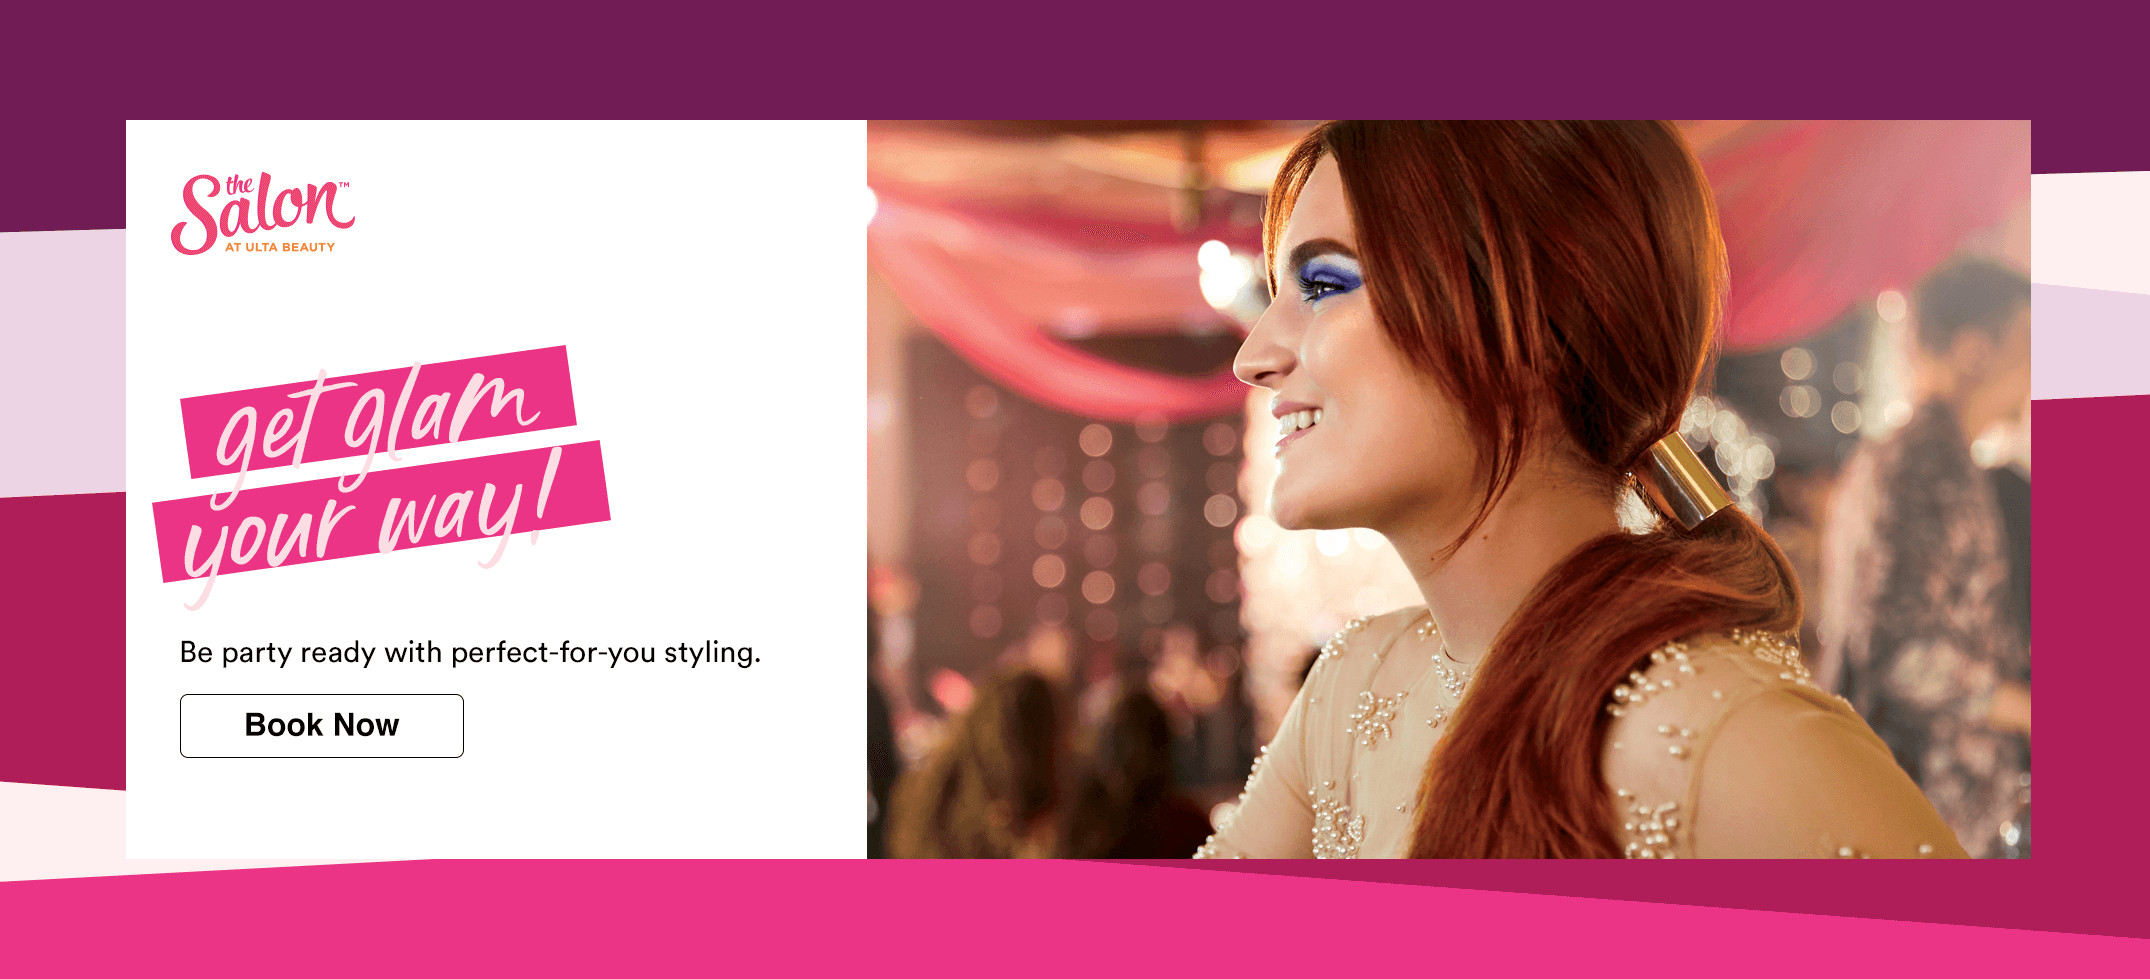 Hair Salon – Book a Hair Style, Haircut & More | Ulta Beauty